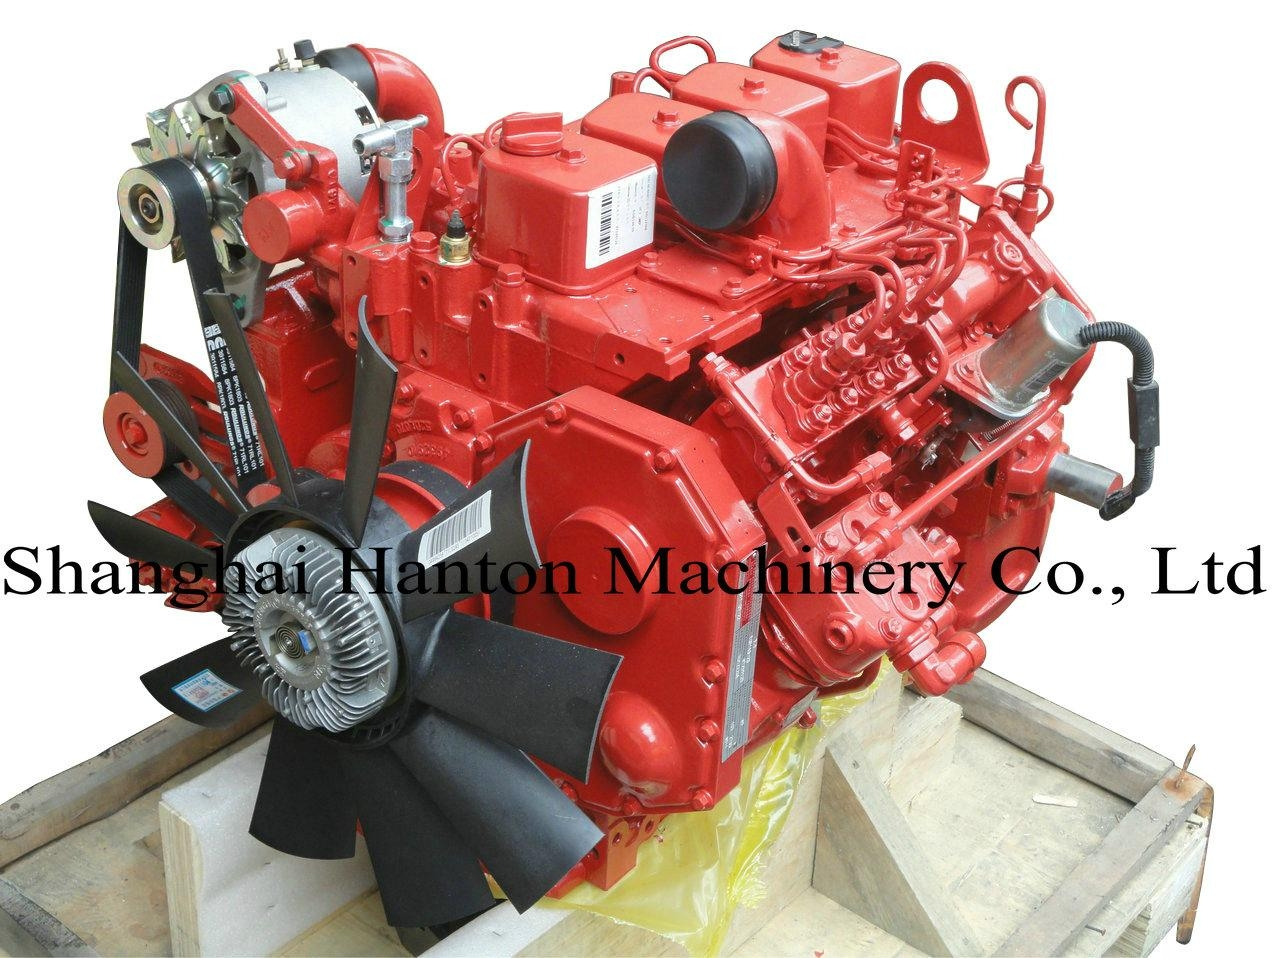 Cummins 4BTAA3.9 diesel engine for automobile and bus 1